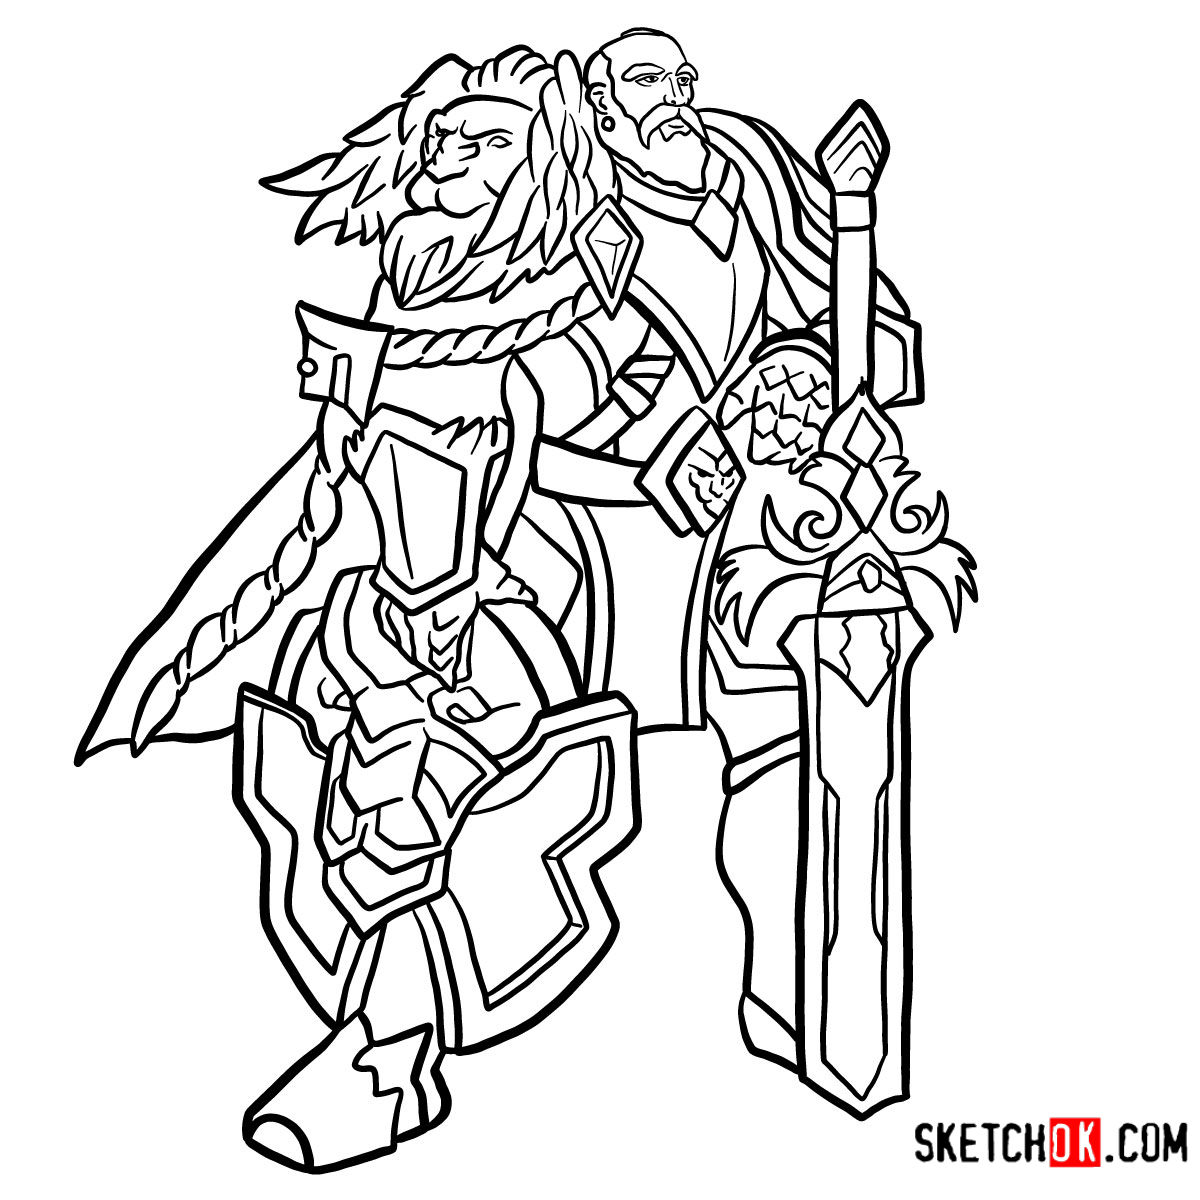 How to draw Lord Anduin Lothar | World of Warcraft - coloring